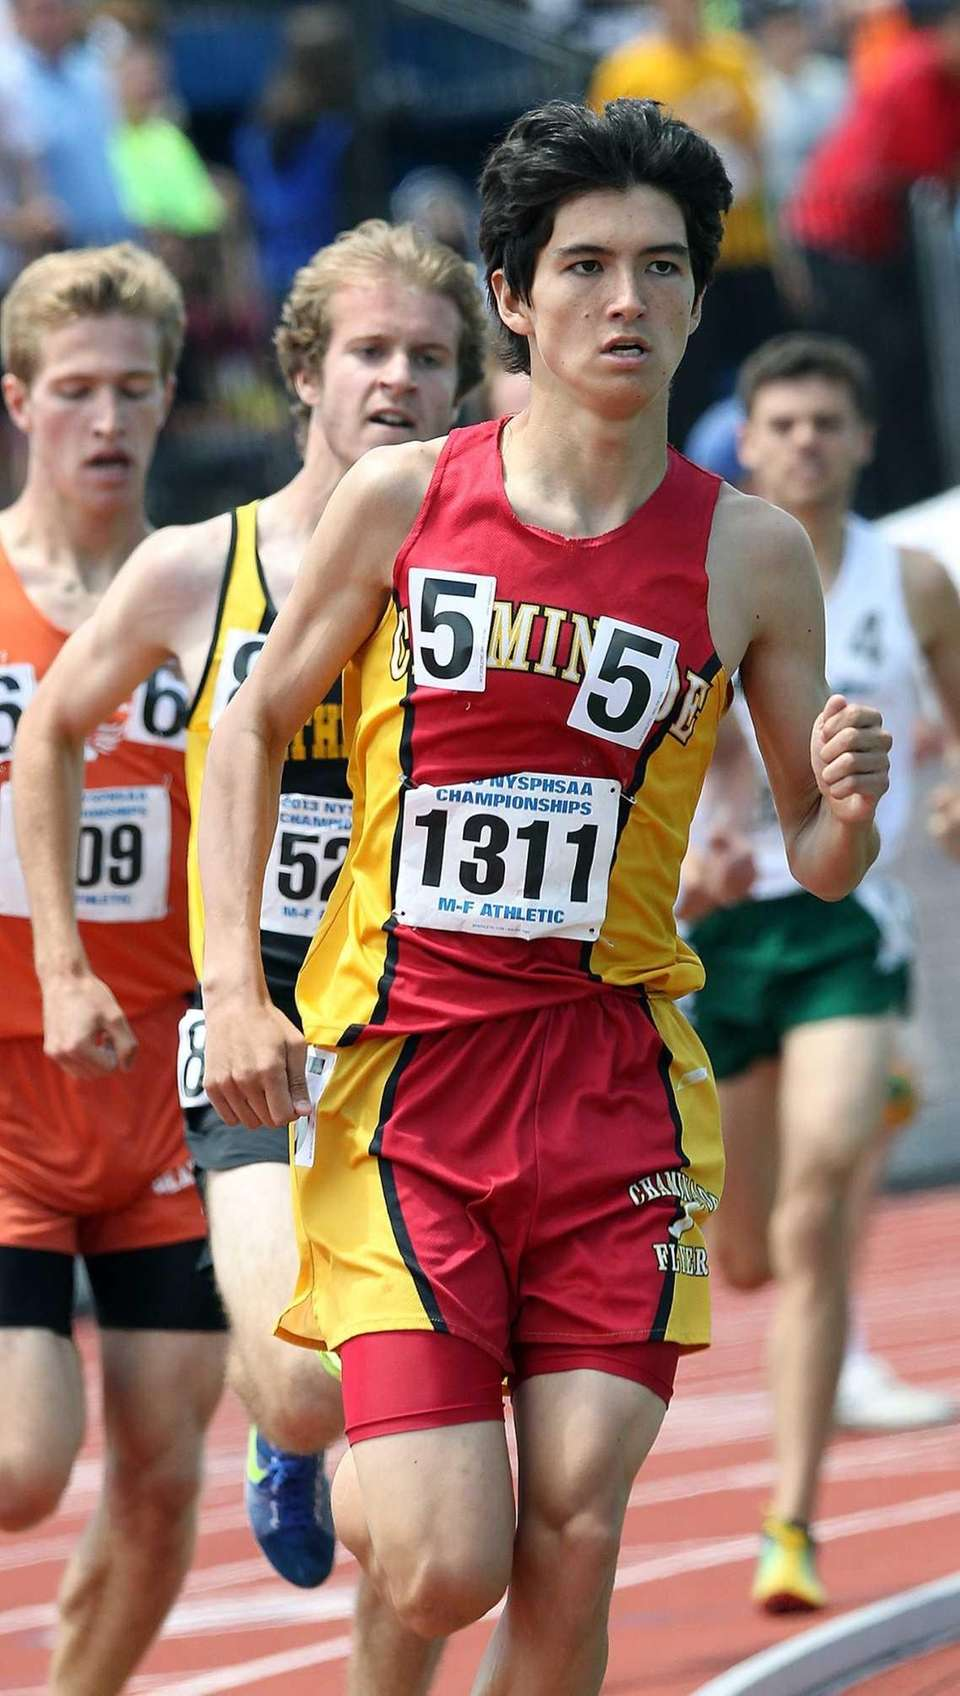 Chaminade's Sean Kelly takes third during the 1600